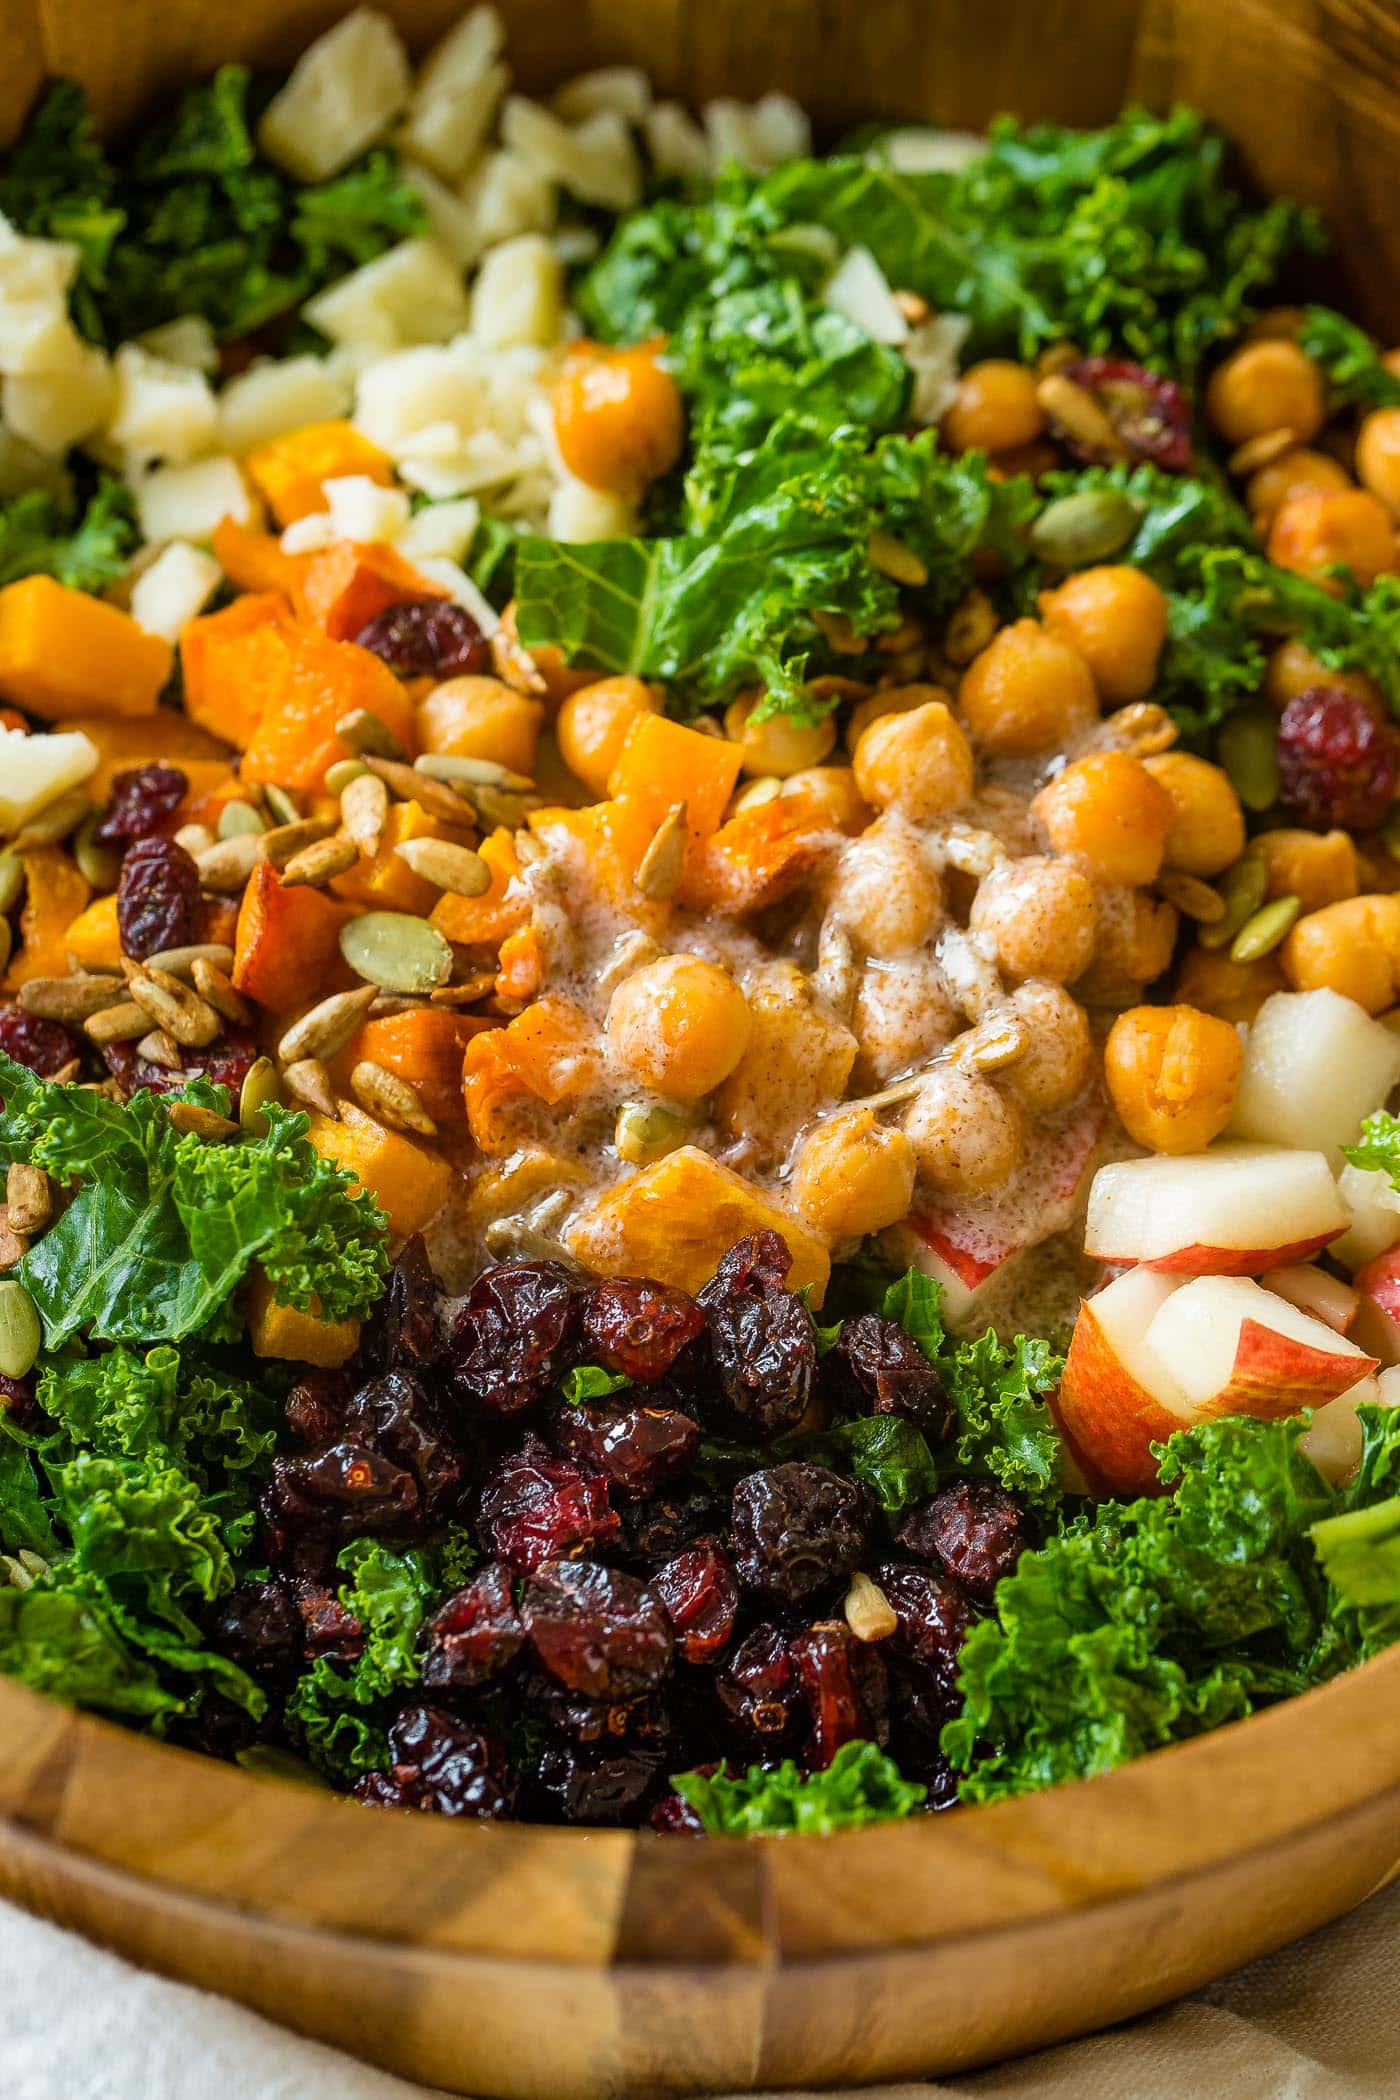 A photo of a large wooden bowl full of kale salad topped with roasted butternut squash, craisins, chickpeas, pepitas, and gouda cheese with dressing that needs to be stirred in.